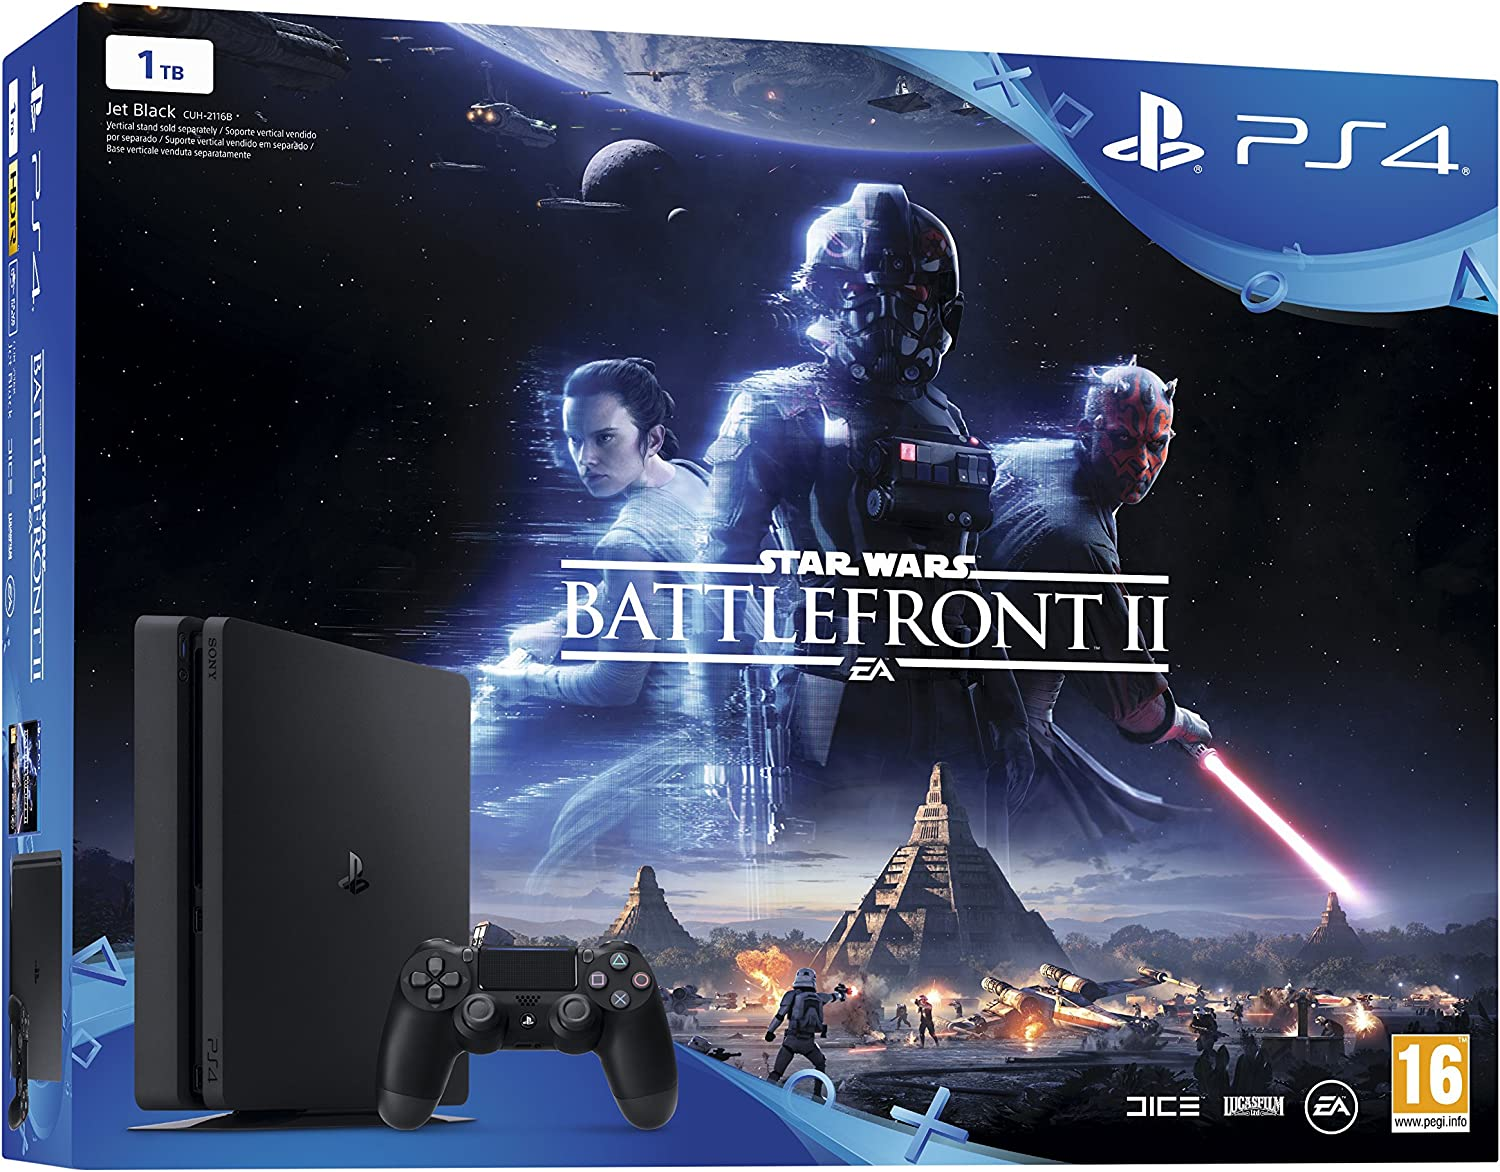 PlayStation 4 (PS4) - Consola 1 TB + Star Wars Battlefront: Amazon ...